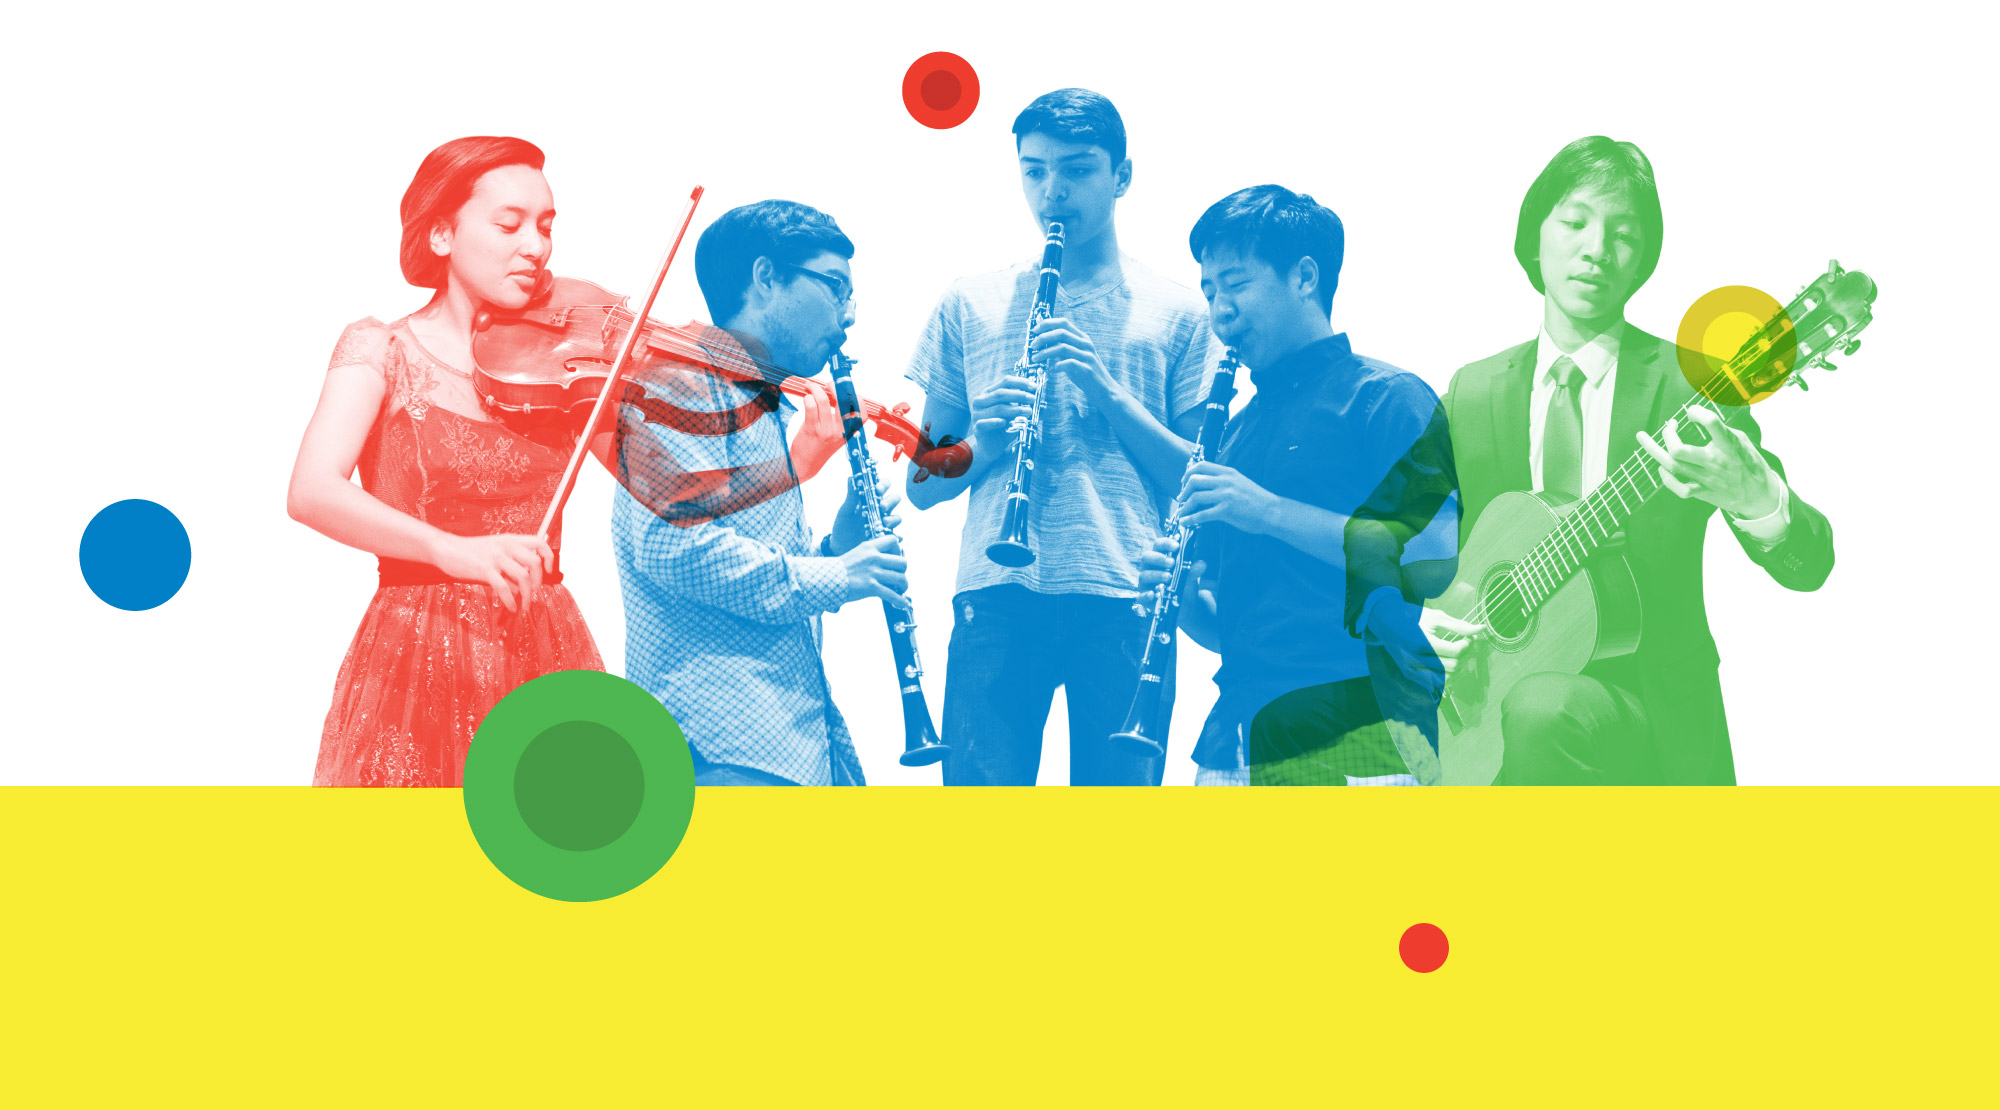 Five teenager music students playing instruments (violin, clarinet, and guitar)